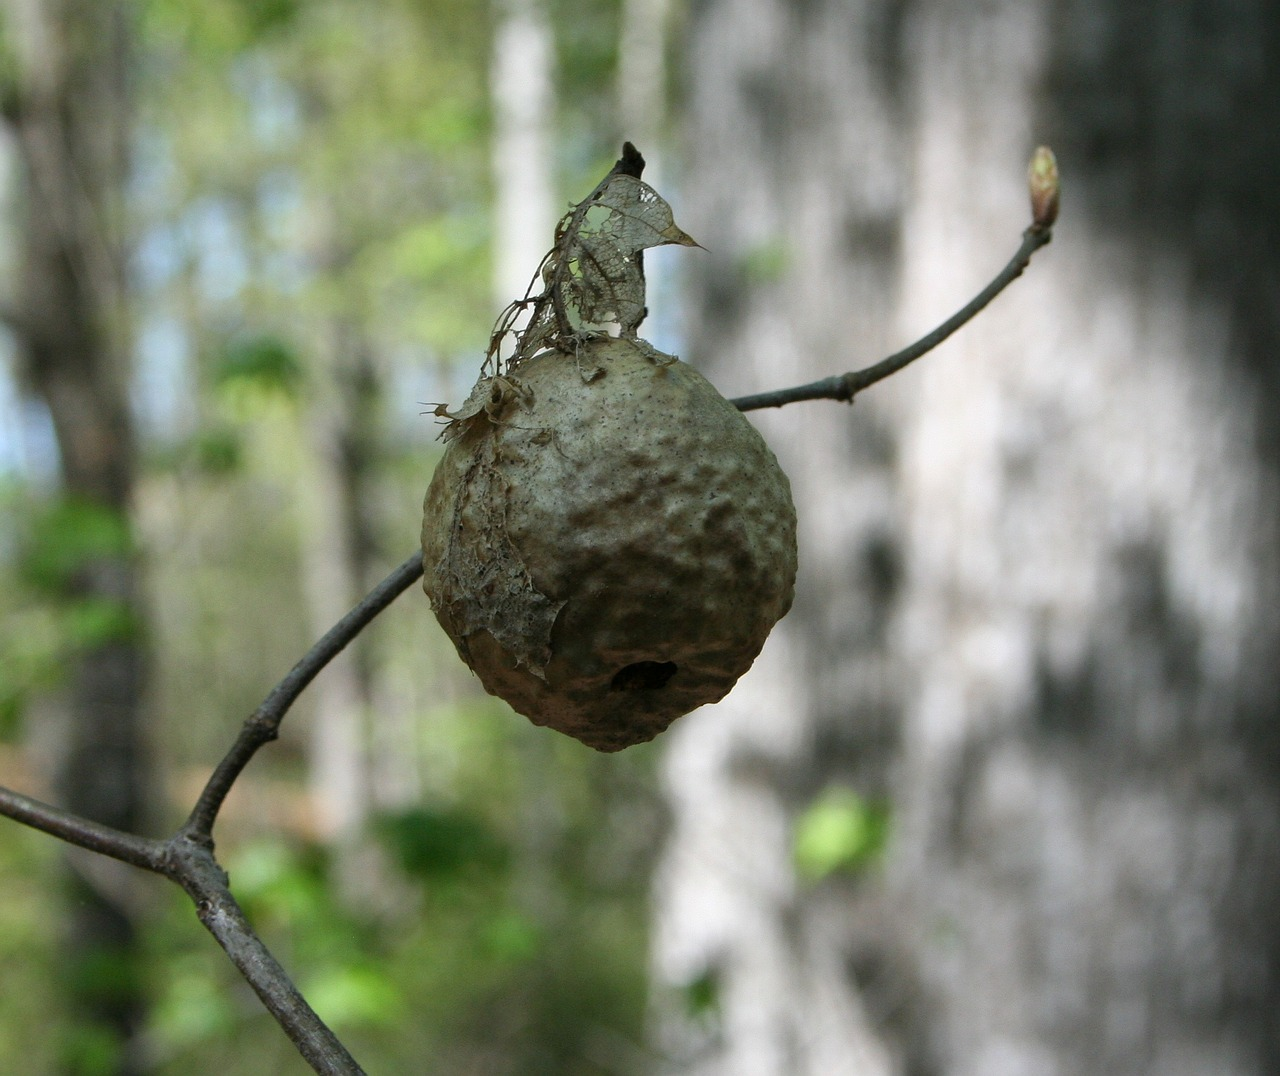 hornet nest insect free photo